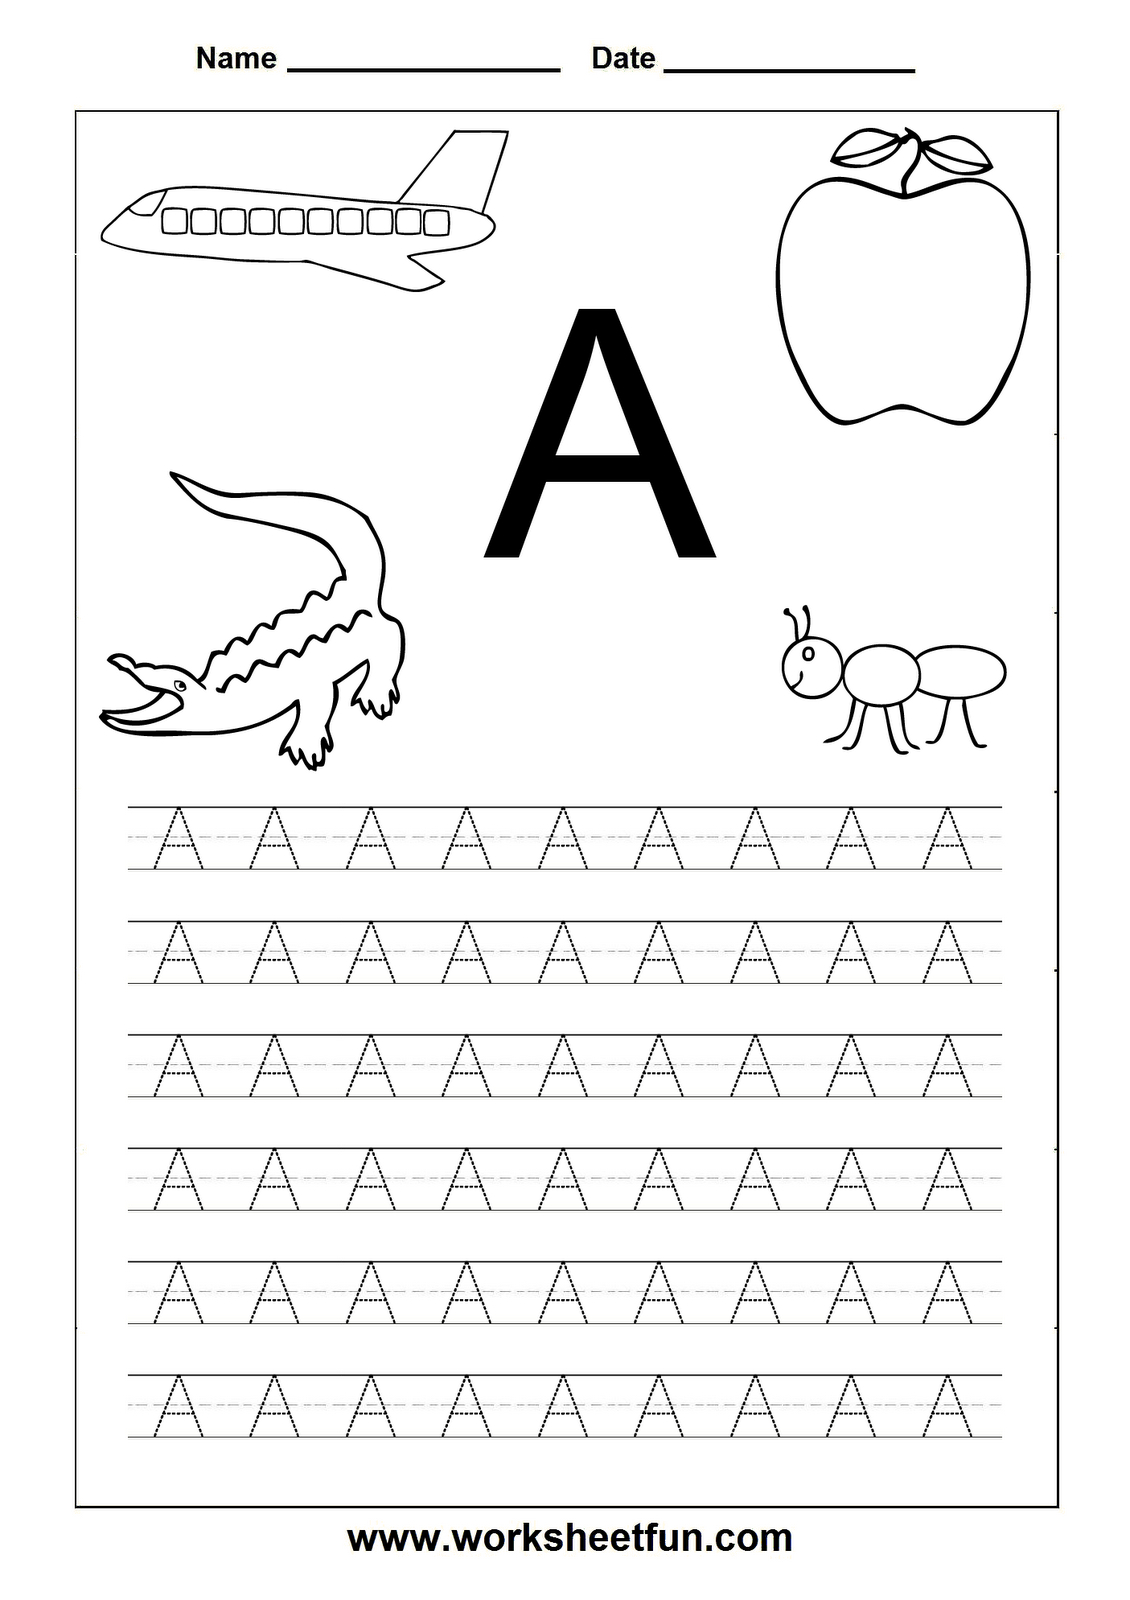 Worksheetfun - Free Printable Worksheets | Toddler Worksheets - Free Printable Letter Worksheets